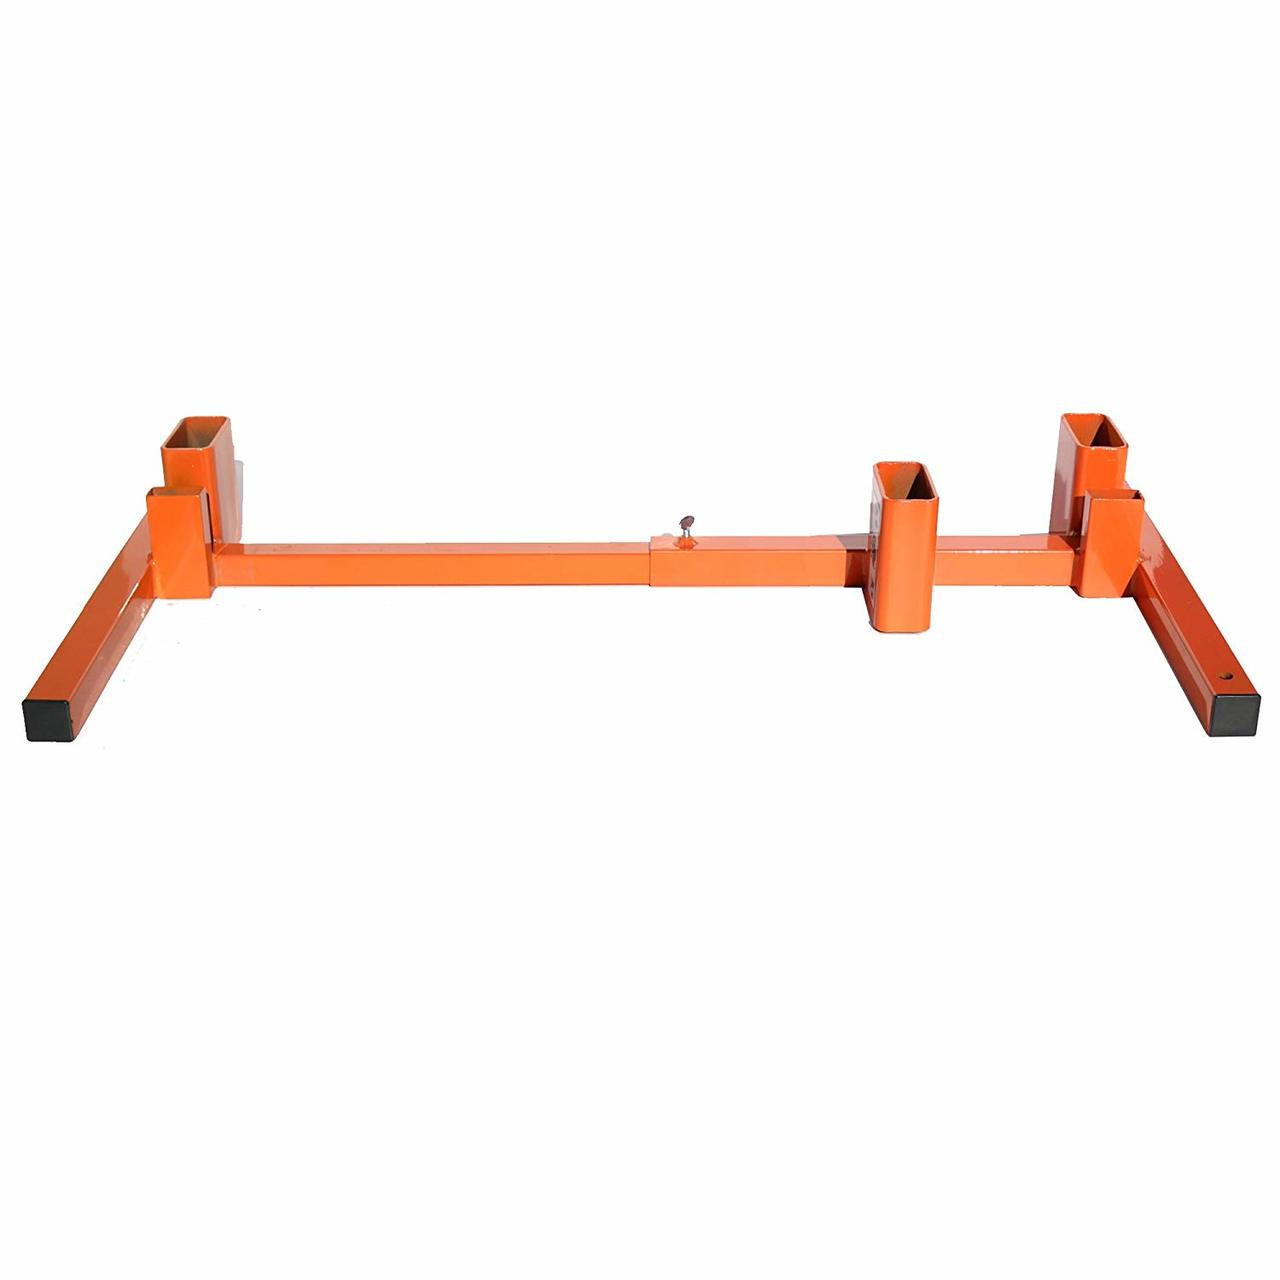 Shooting Target Stand Base 3 in 1 Adjustable